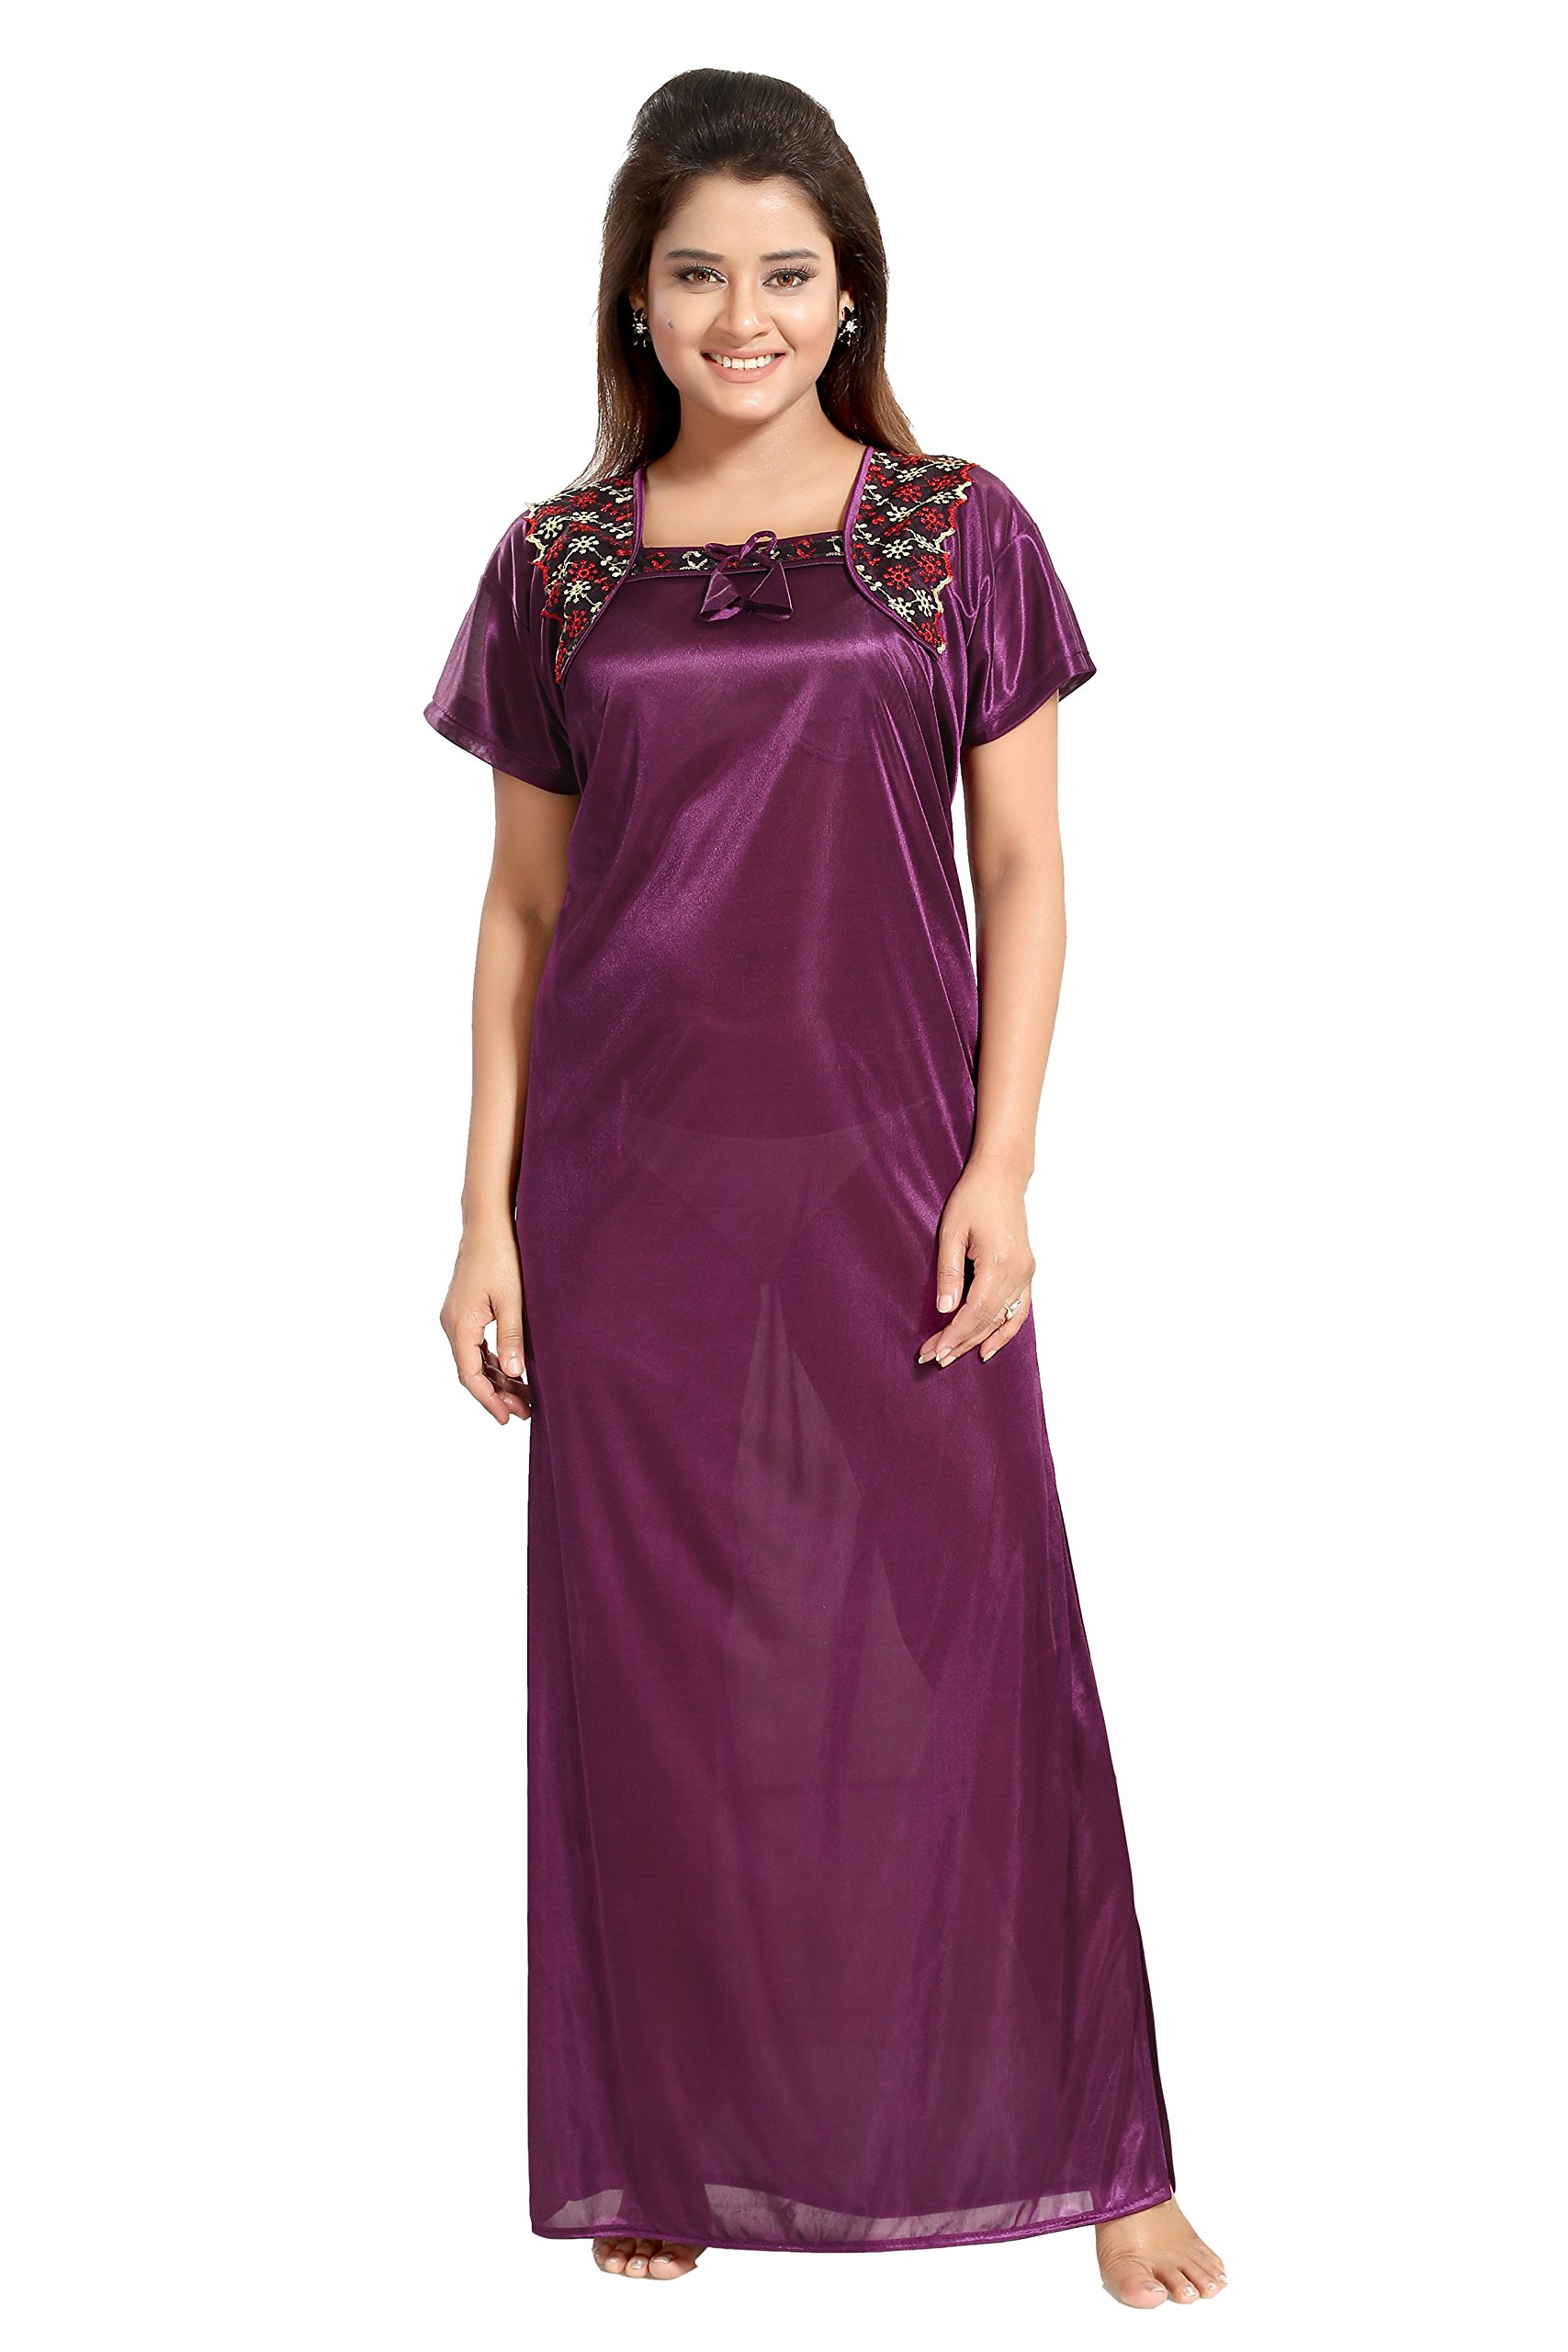 TUCUTE Women Satin Night Gown Nightwear   Nighty (Wine) (Free Size ... 031a2b649